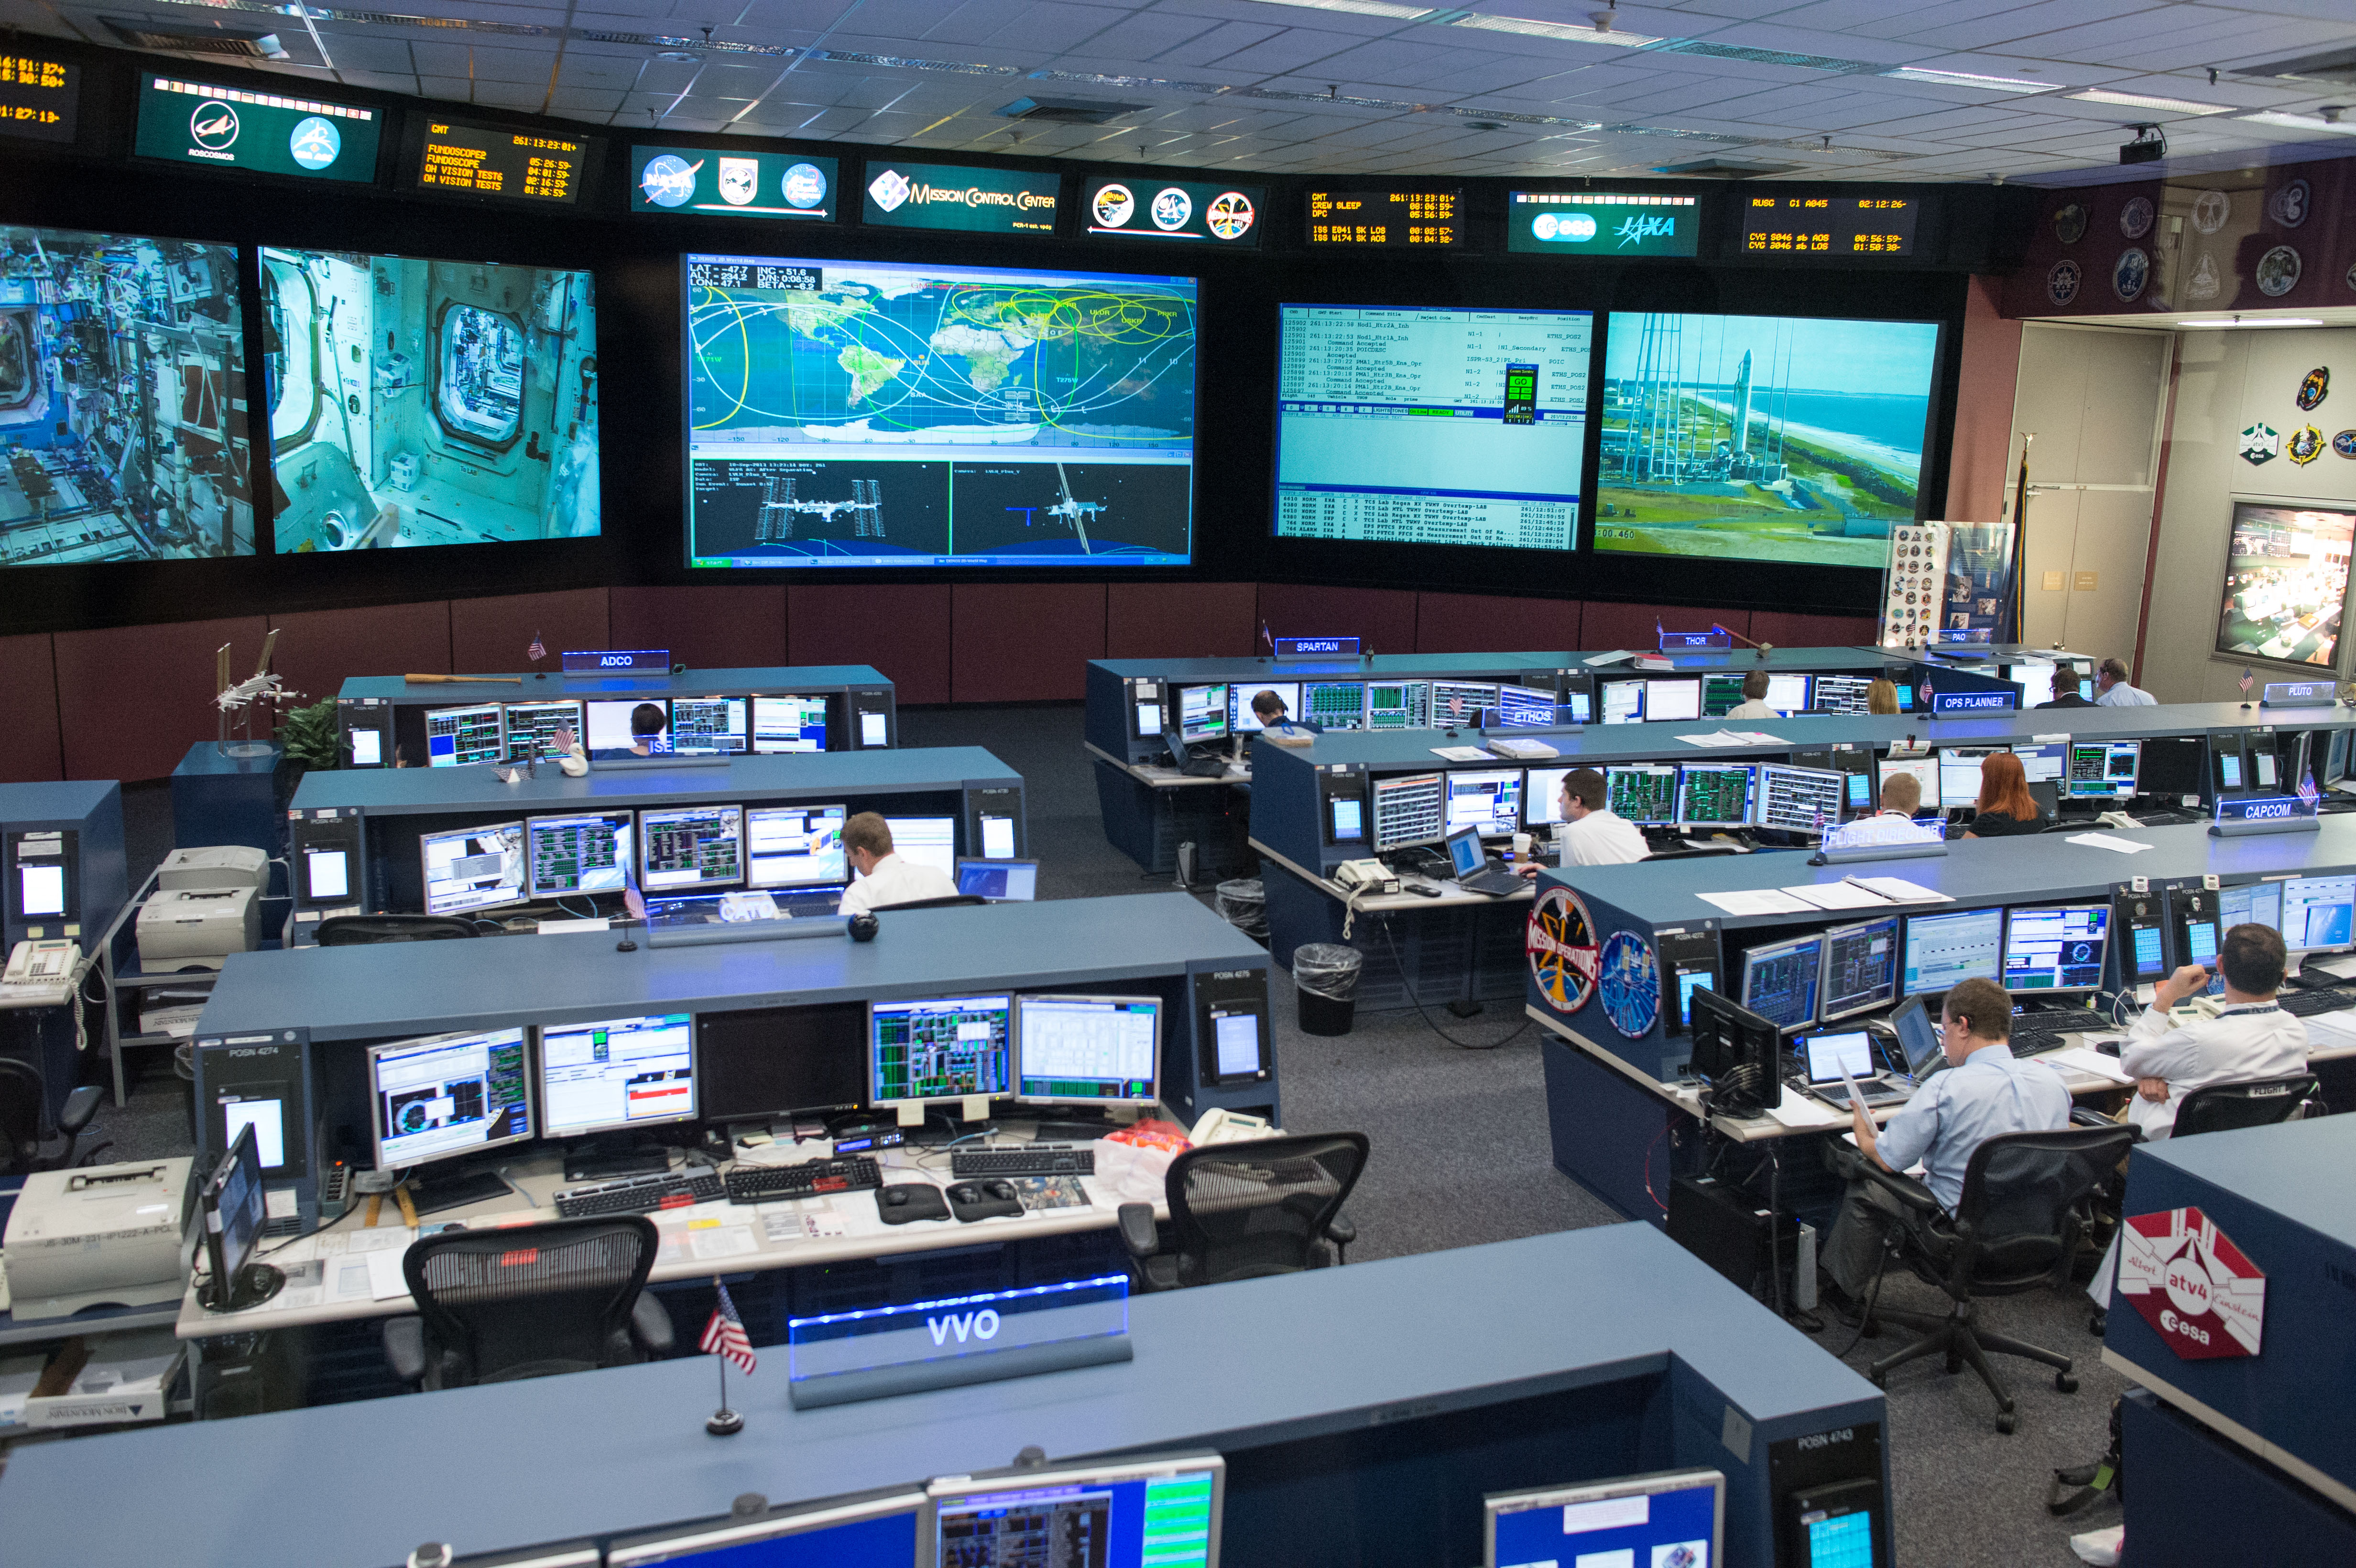 Inside NASA Mission Control with Astro Mike Massimino